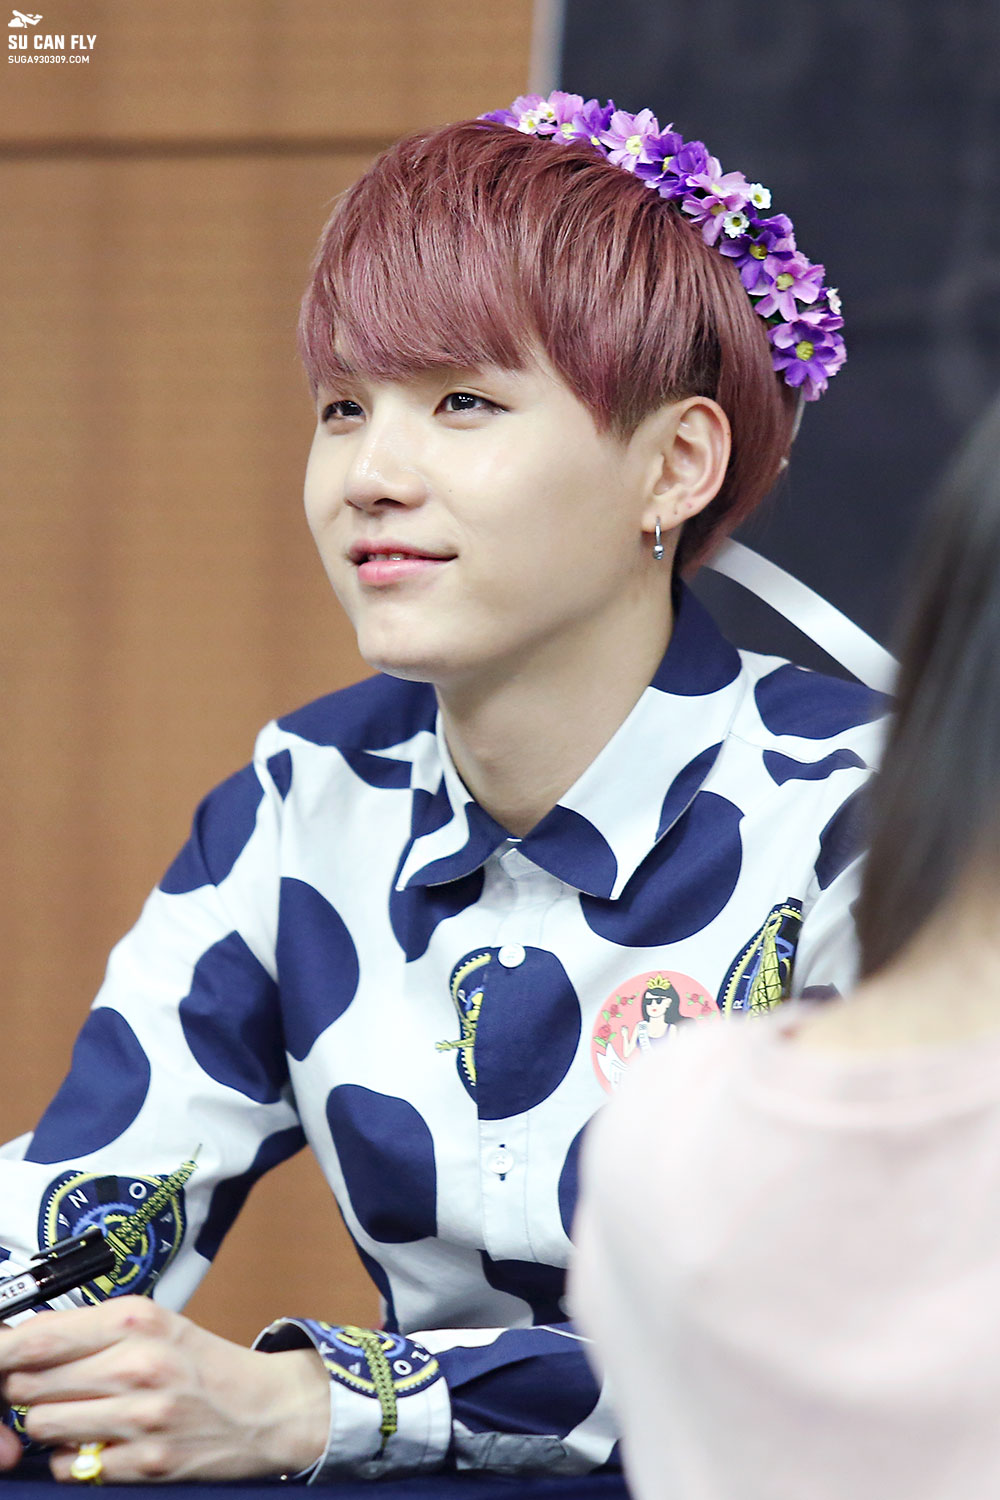 Fall Wallpaper Drawing Picture Fansitesnap Bts Fansigning 3rd Mini Album 화양연화